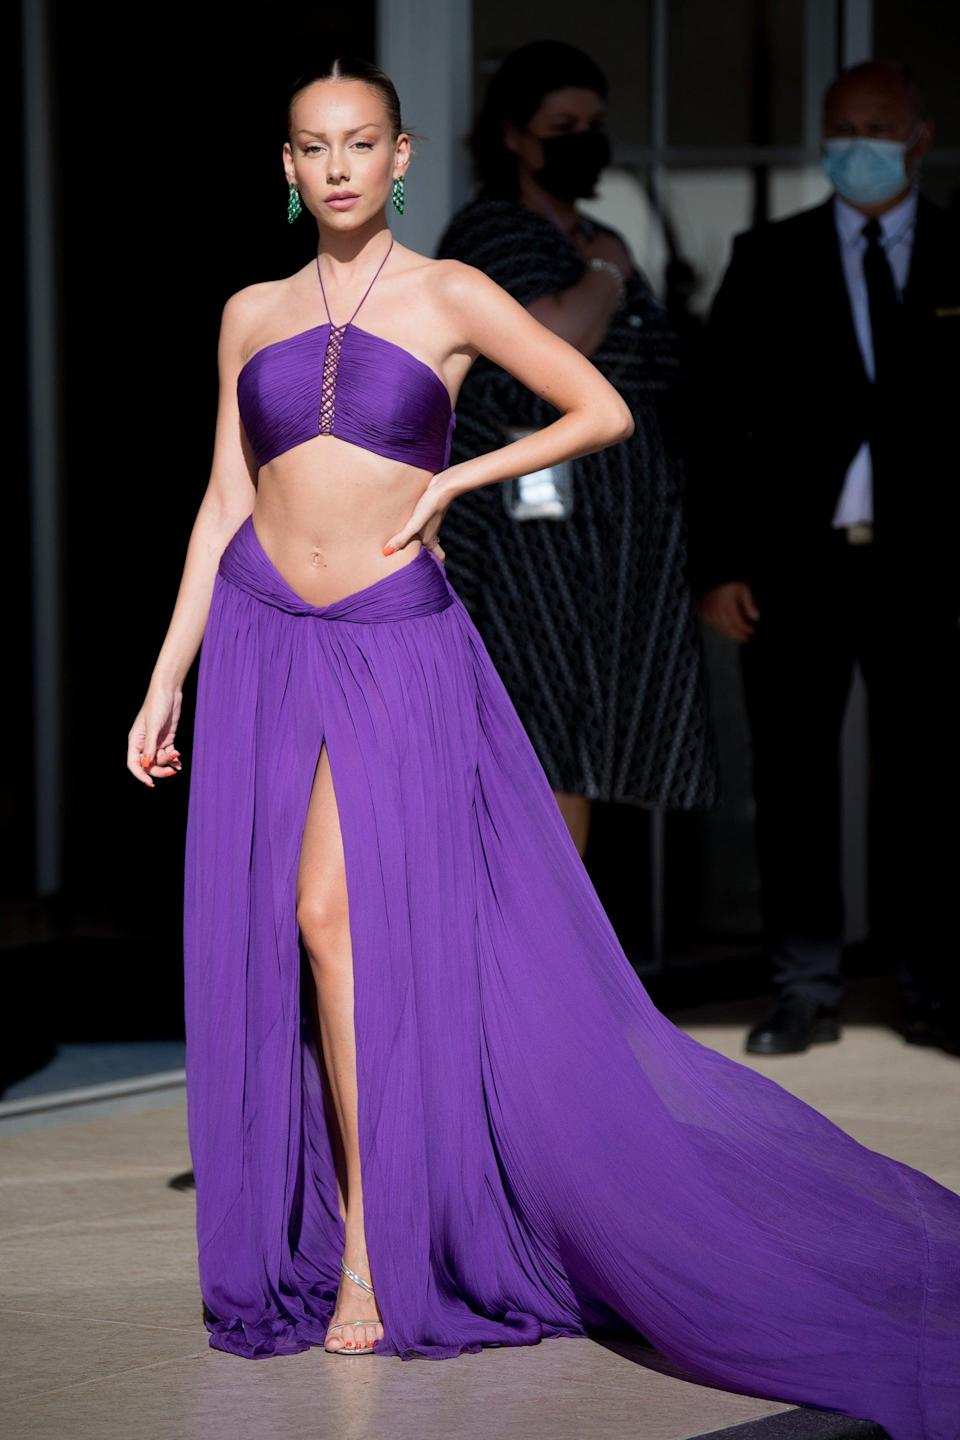 """Spanish actress Ester Exposito gave the <a href=""""https://www.refinery29.com/en-us/2021/04/10419437/midriff-spring-2021-fashion-trend-cut-out-crop-tops"""" rel=""""nofollow noopener"""" target=""""_blank"""" data-ylk=""""slk:midriff-baring trend"""" class=""""link rapid-noclick-resp"""">midriff-baring trend</a> her stamp of approval in a purple Etro halter top dress with a high slit. <span class=""""copyright"""">Photo: Jacopo Raule/GC Images.</span>"""